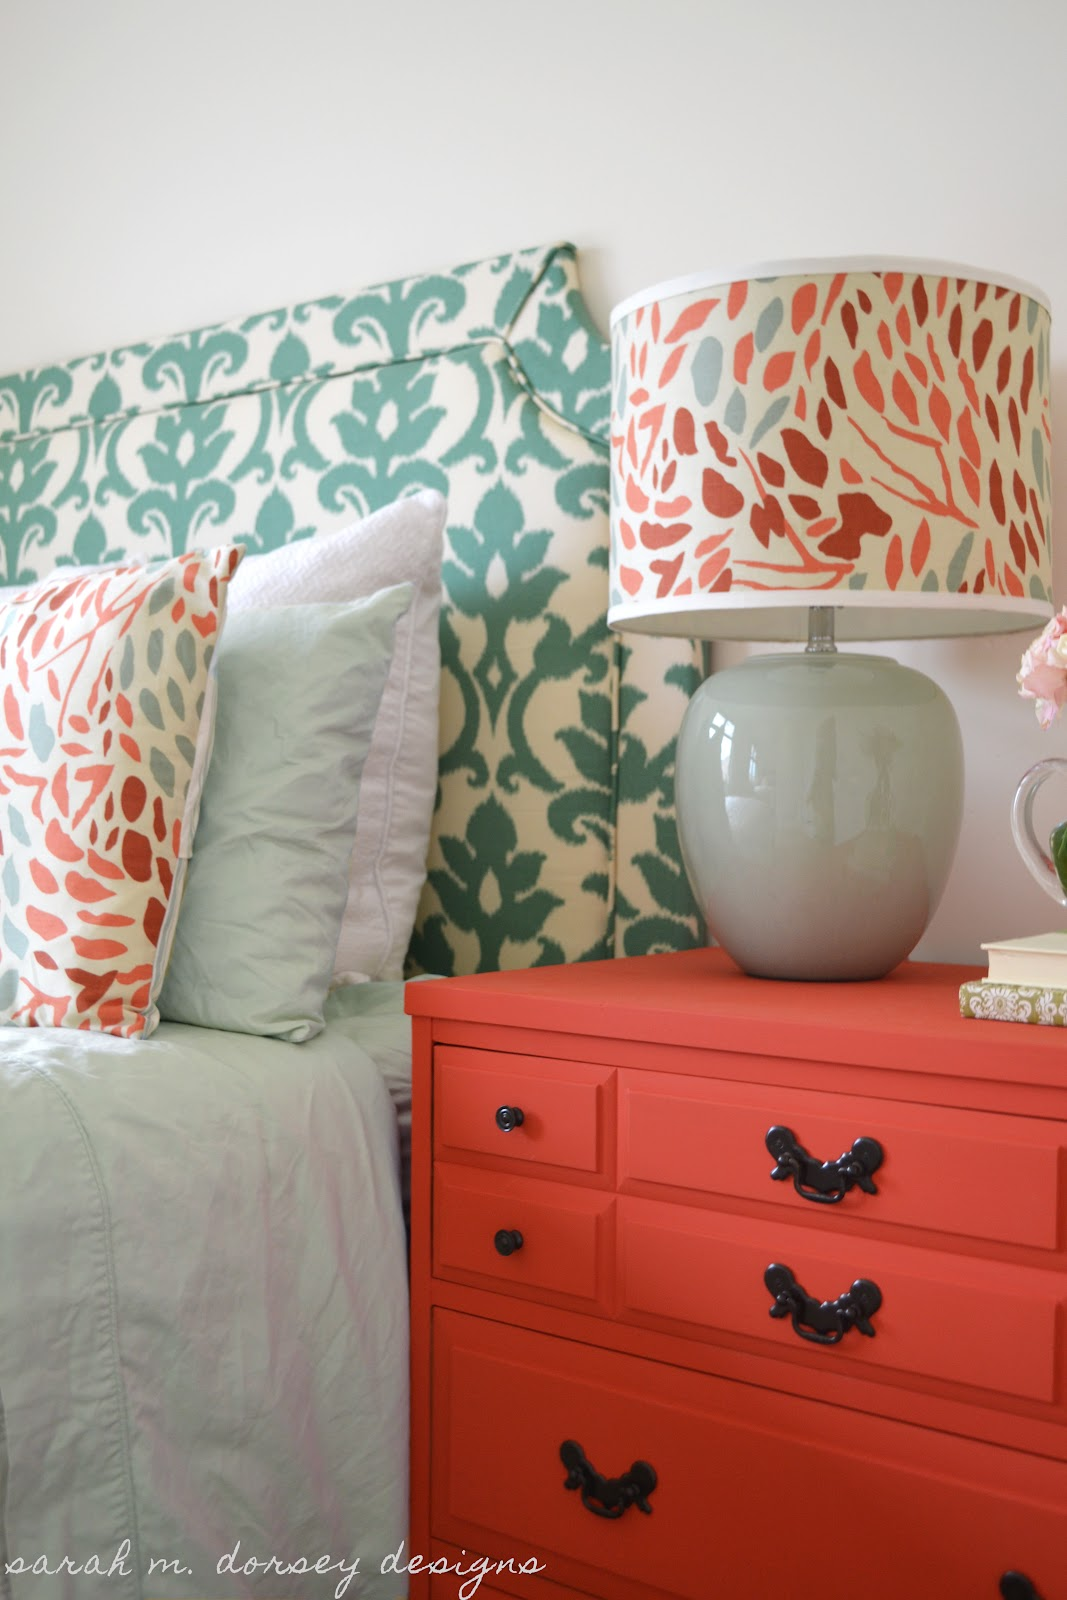 Sarah M Dorsey Designs Diy Belgrave Headboard With Ikat